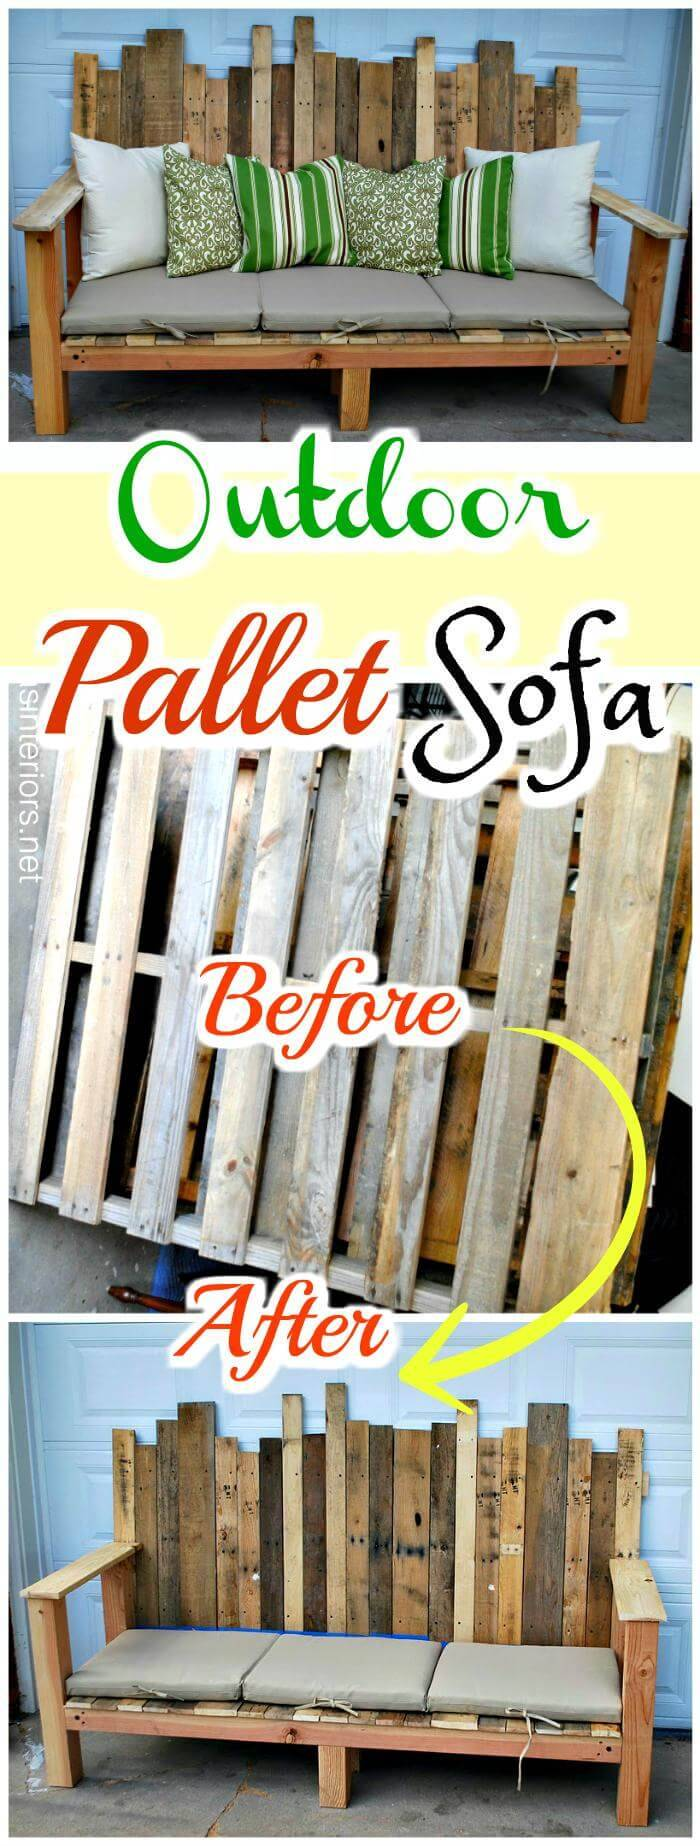 Handcrafted Outdoor Pallet Sofa